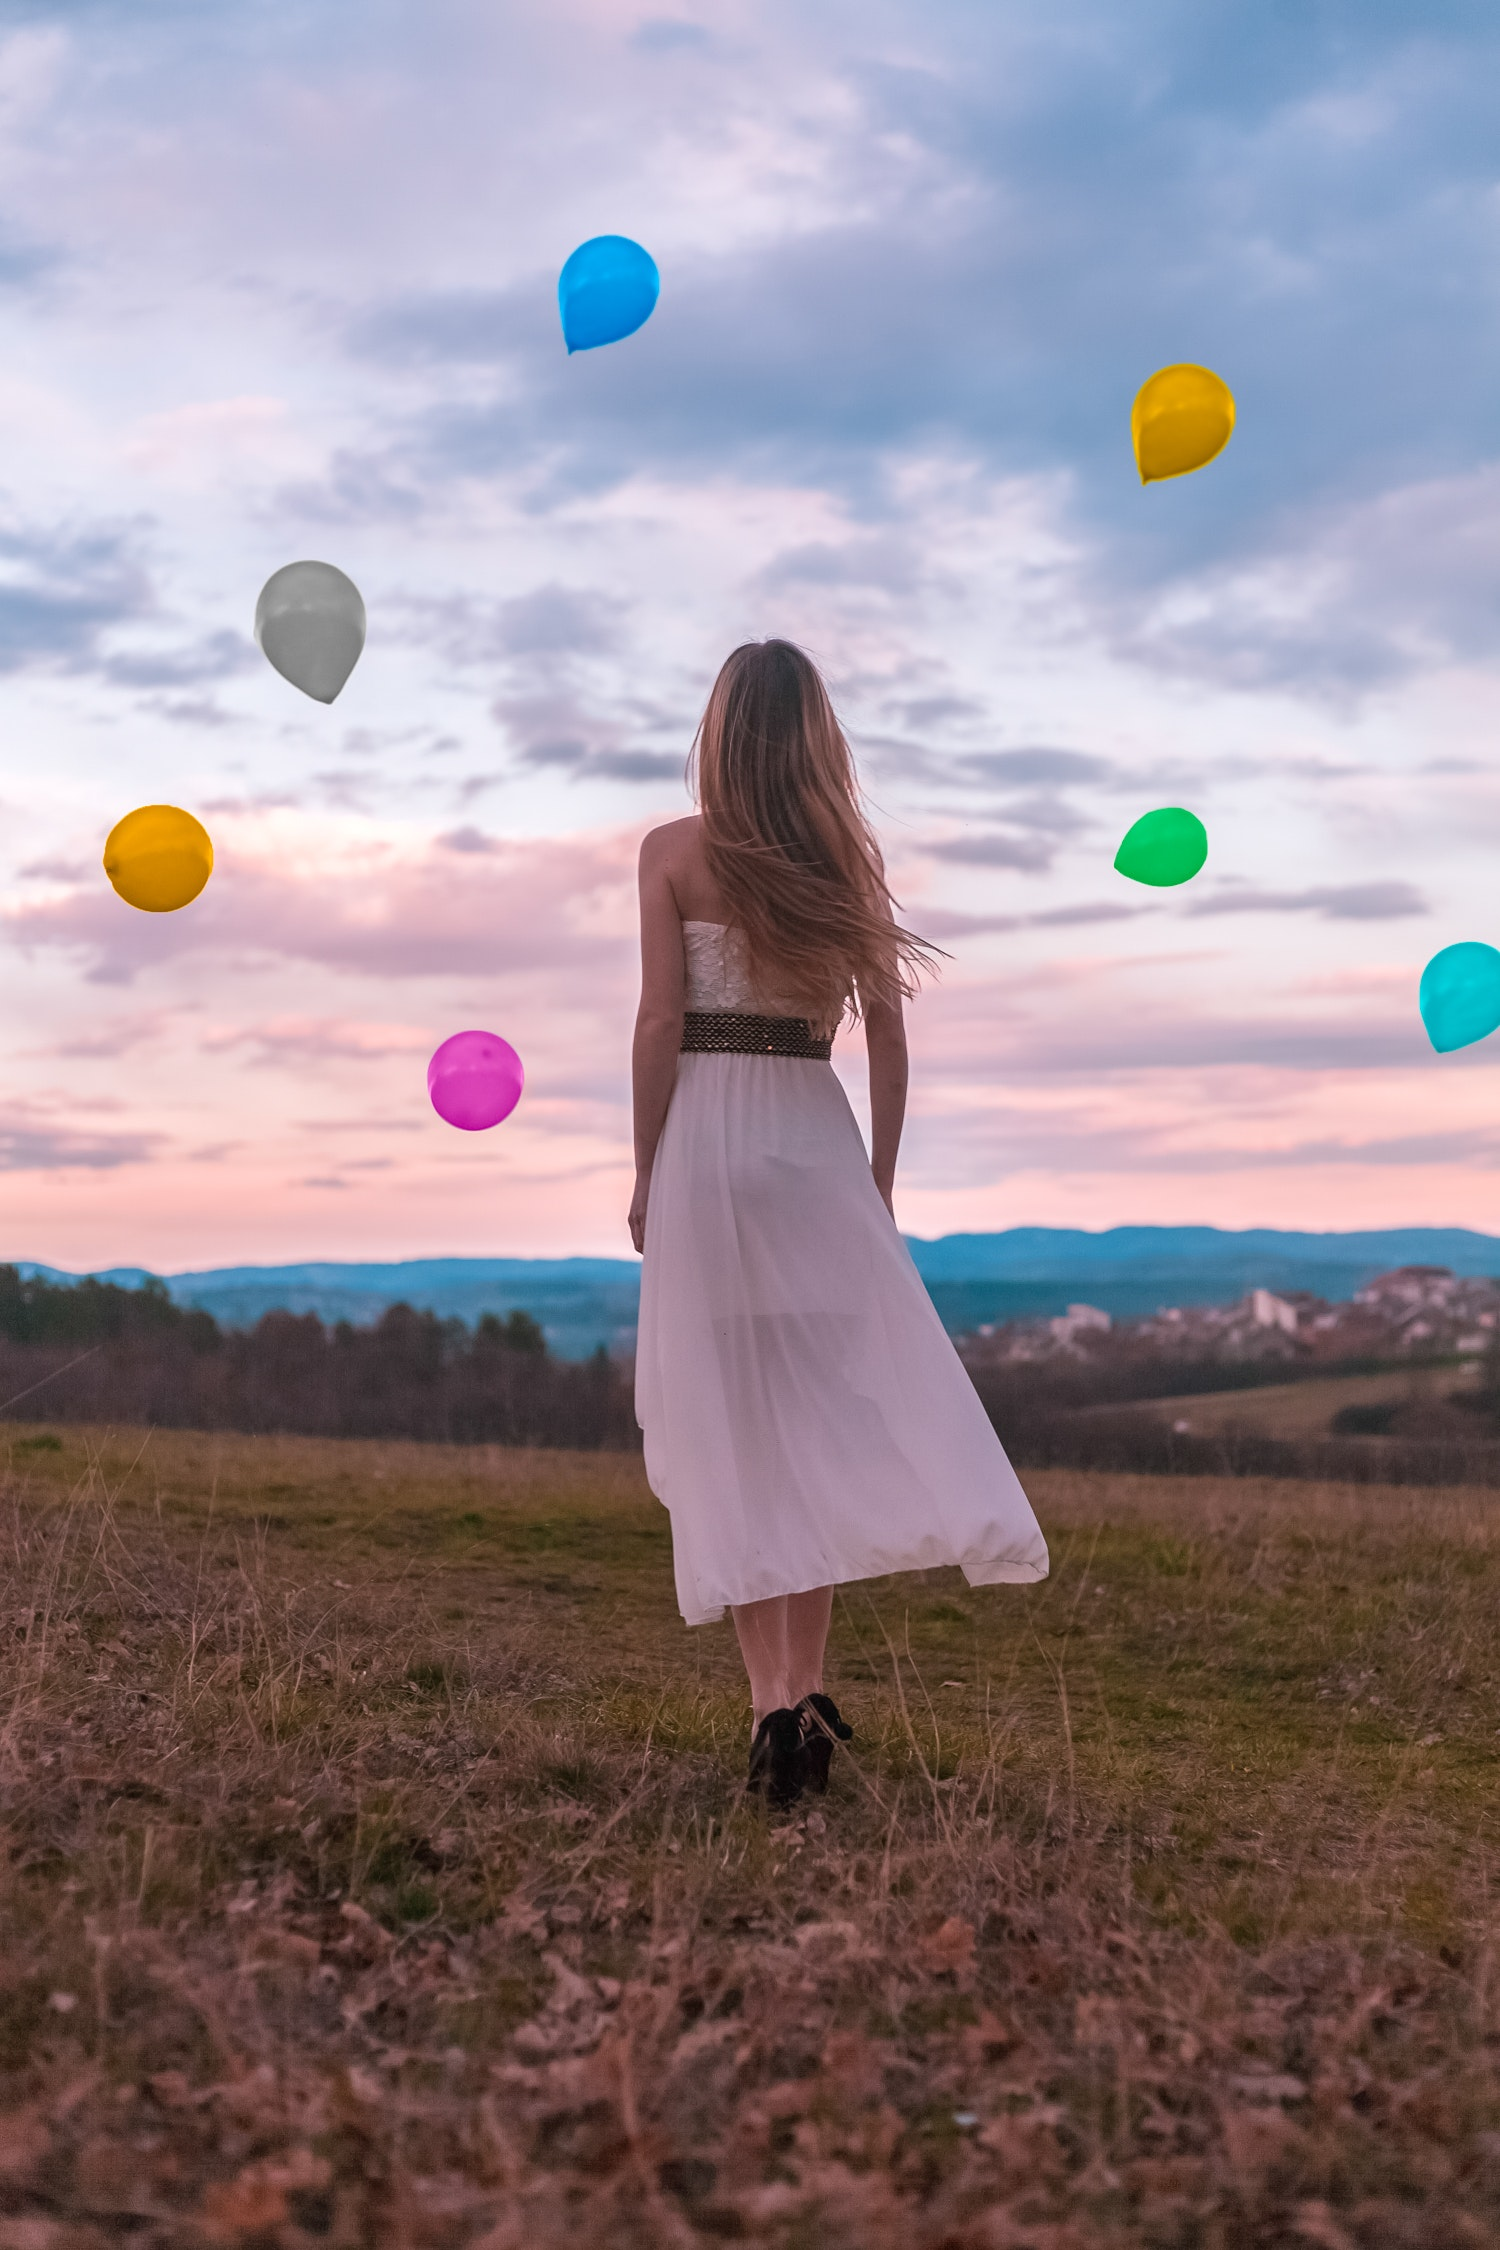 Woman in White Dress Looking at the Balloons, Joy, Young, Woman, White dress, HQ Photo